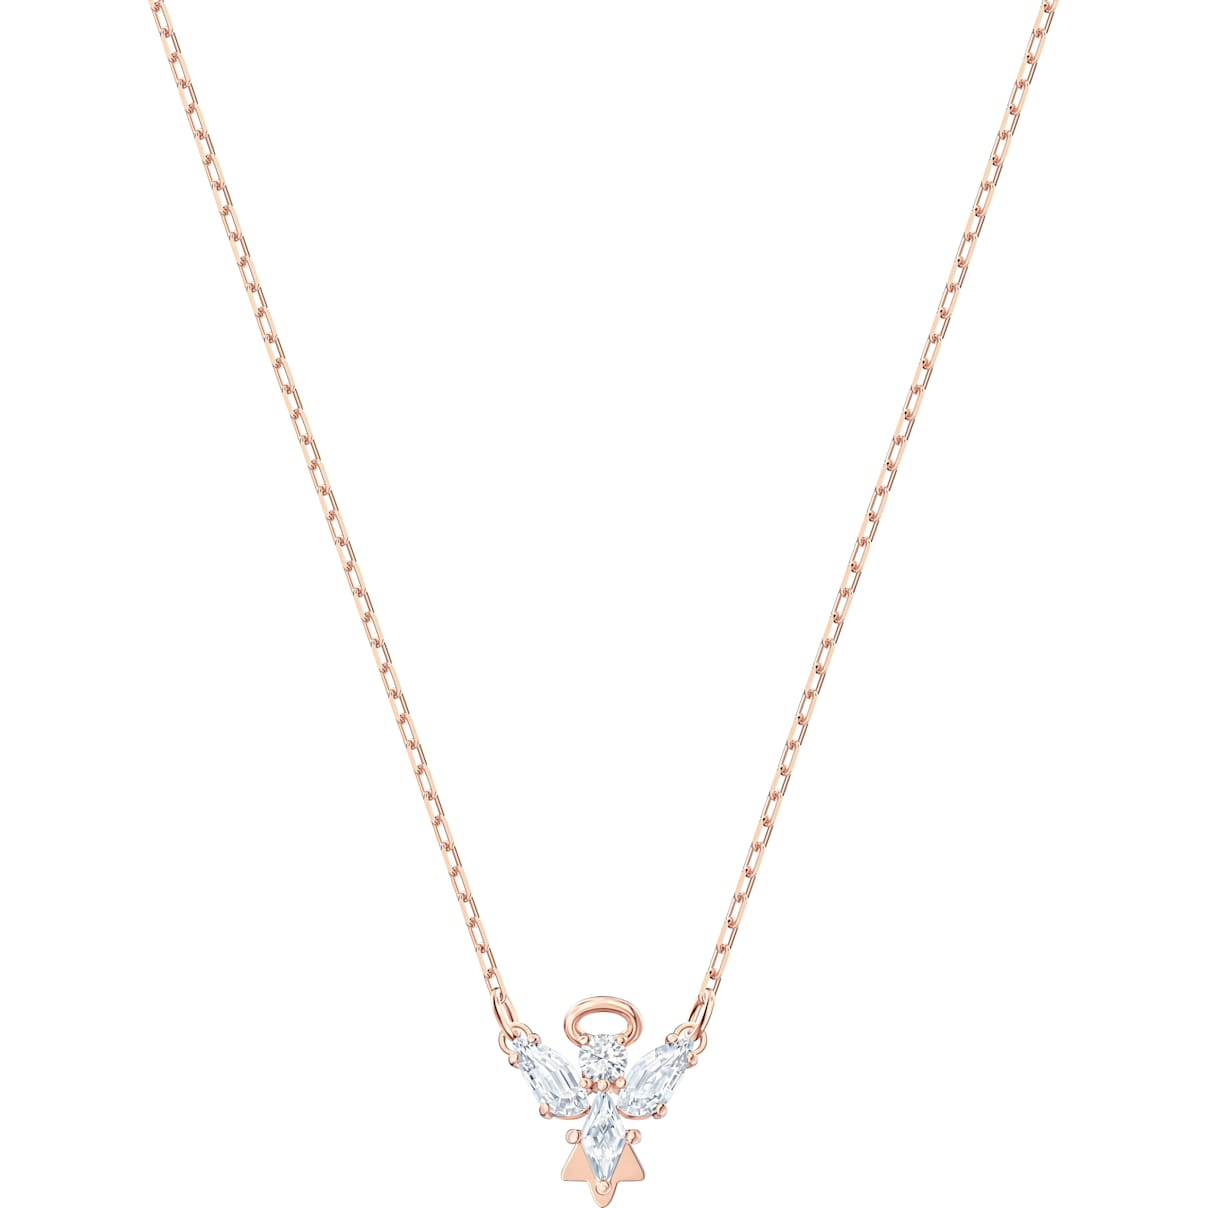 Swarovski Magic Angel Necklace, White, Rose-gold tone plated